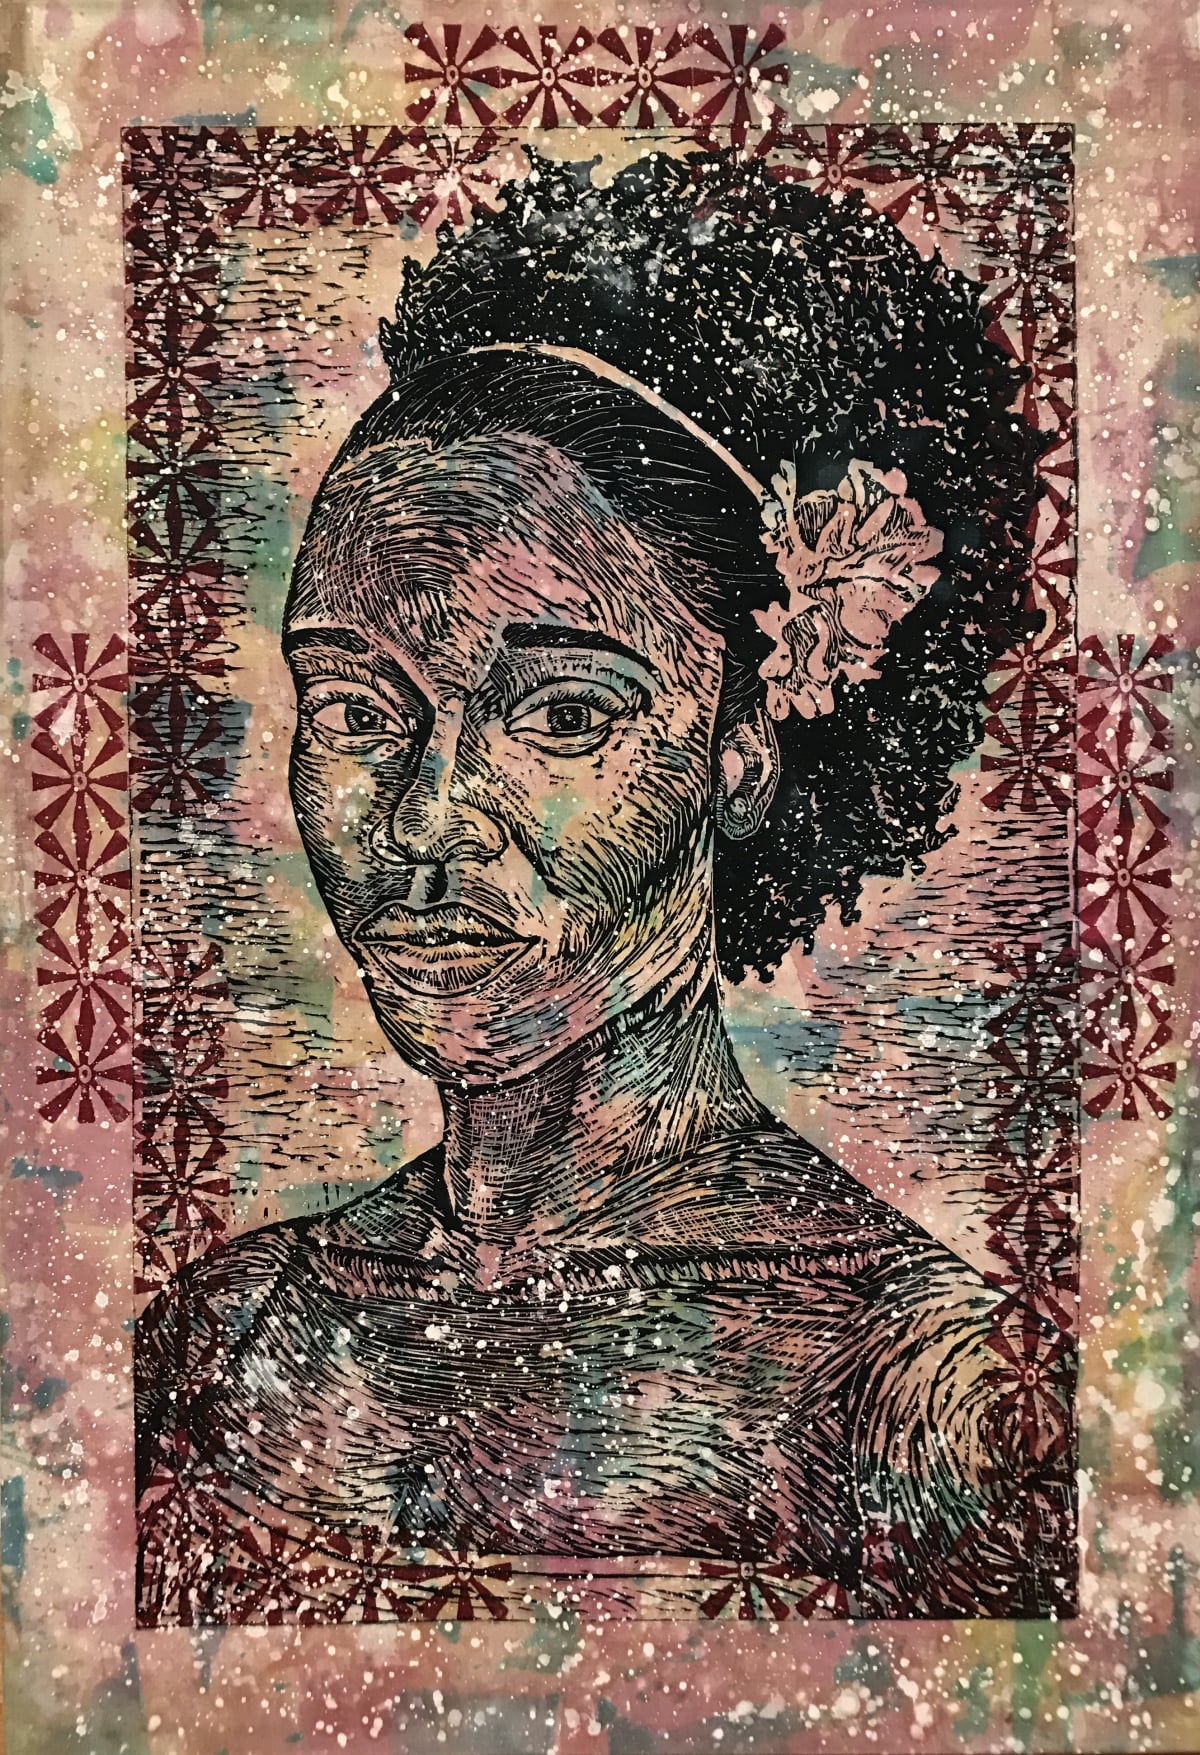 Latoya Hobbs Angel III Wood cut monoprint on muslin 53 x 36